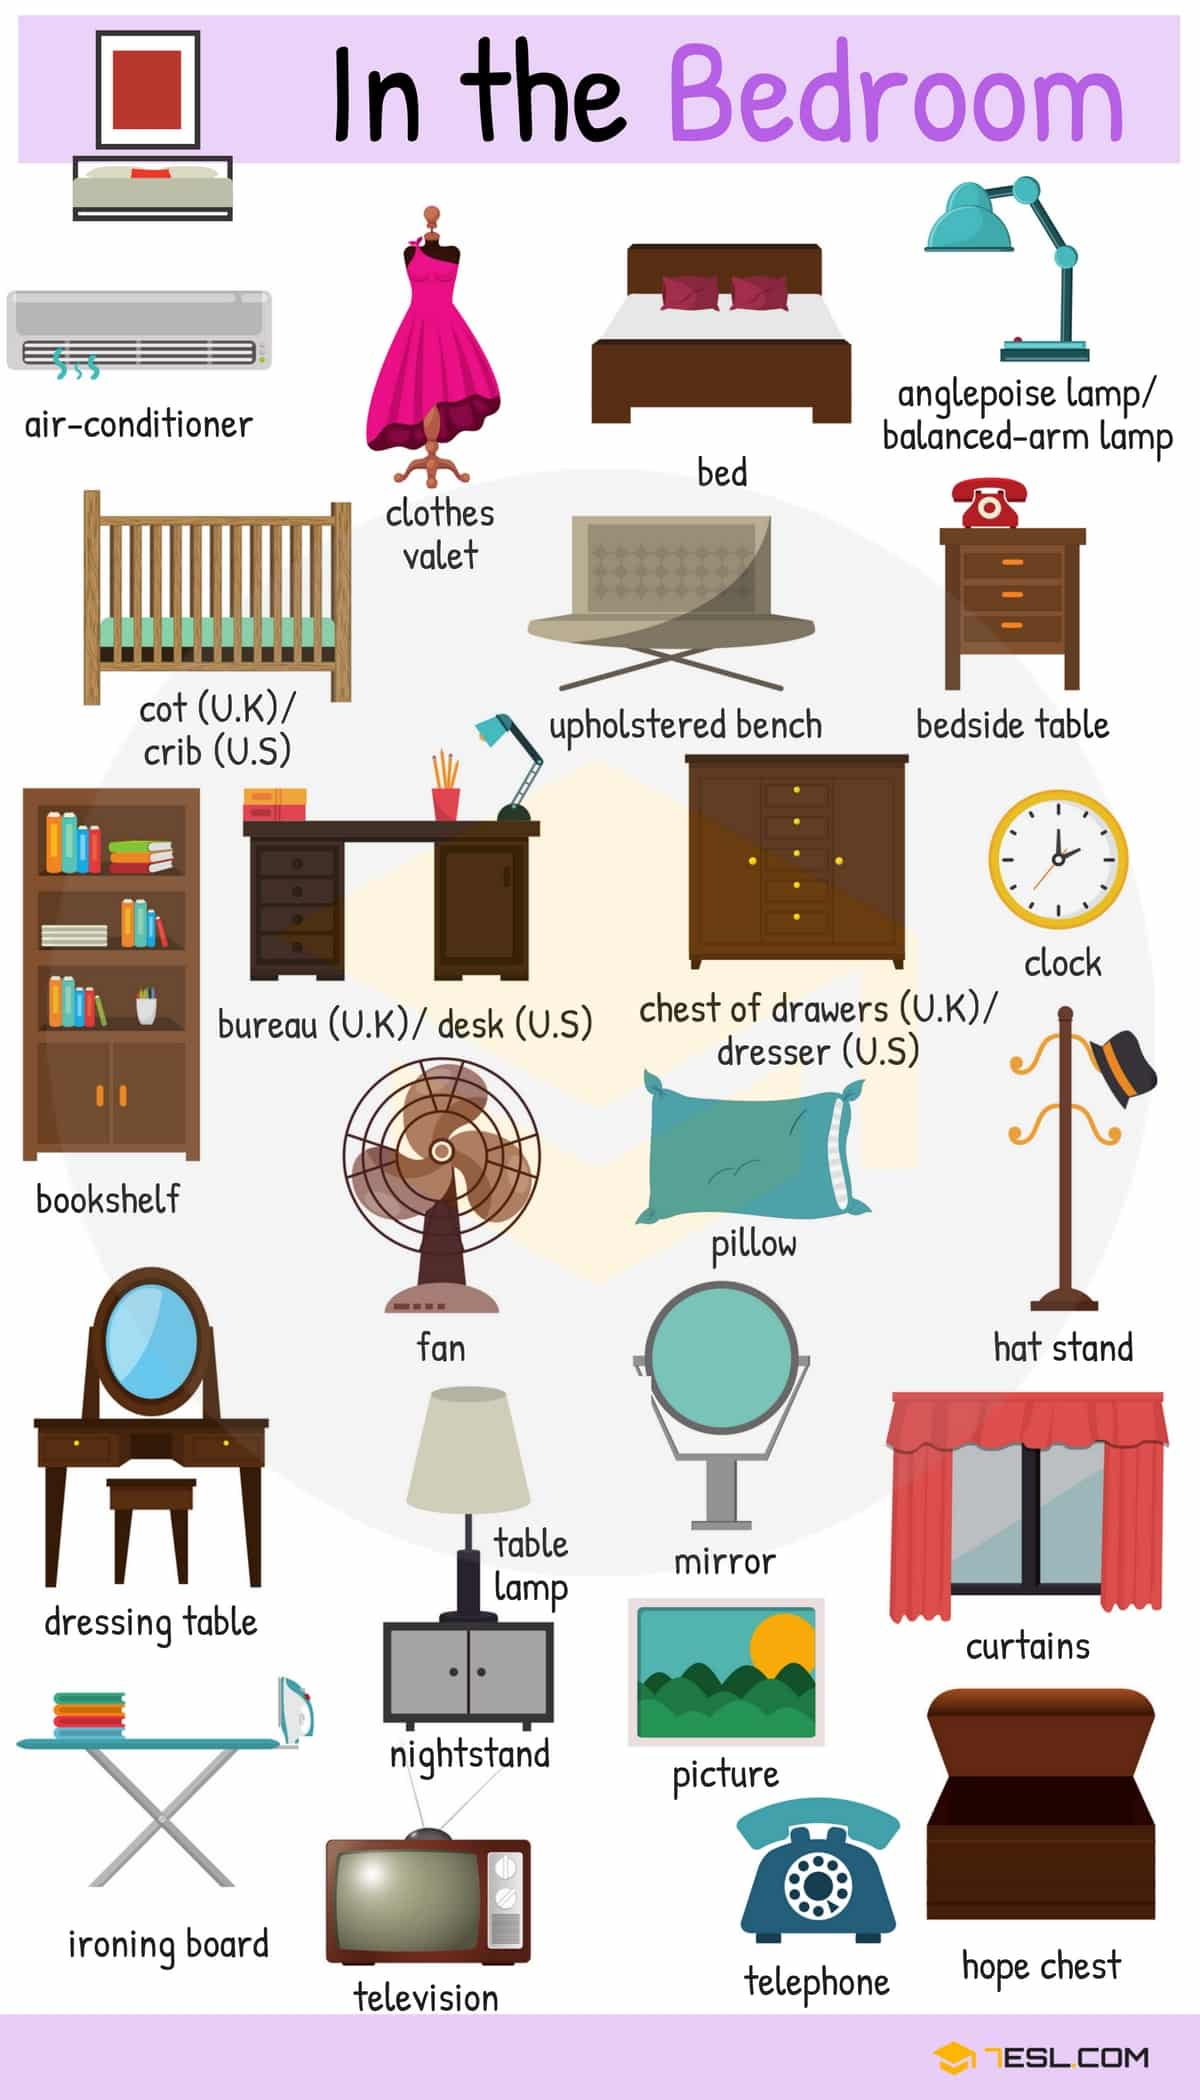 bedroom things list in the bedroom vocabulary names of bedroom objects 7 e s l 10095